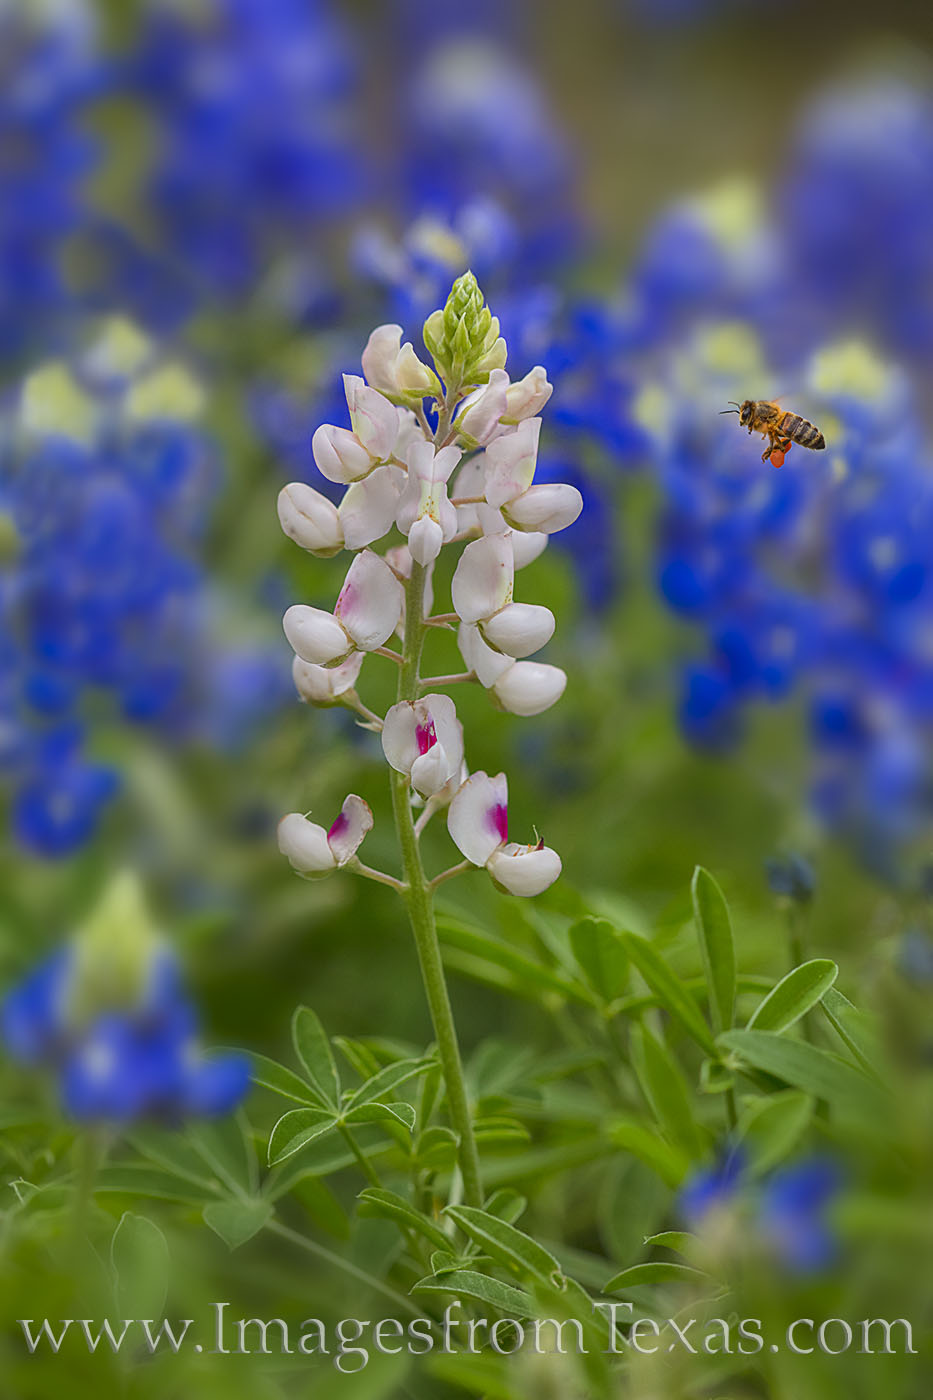 bluebonnets, whitebonnets, white bonnet, wildflowers, bees, hill country, texas wildflowers, texas blueobonnets, white, blue, portrait, photo